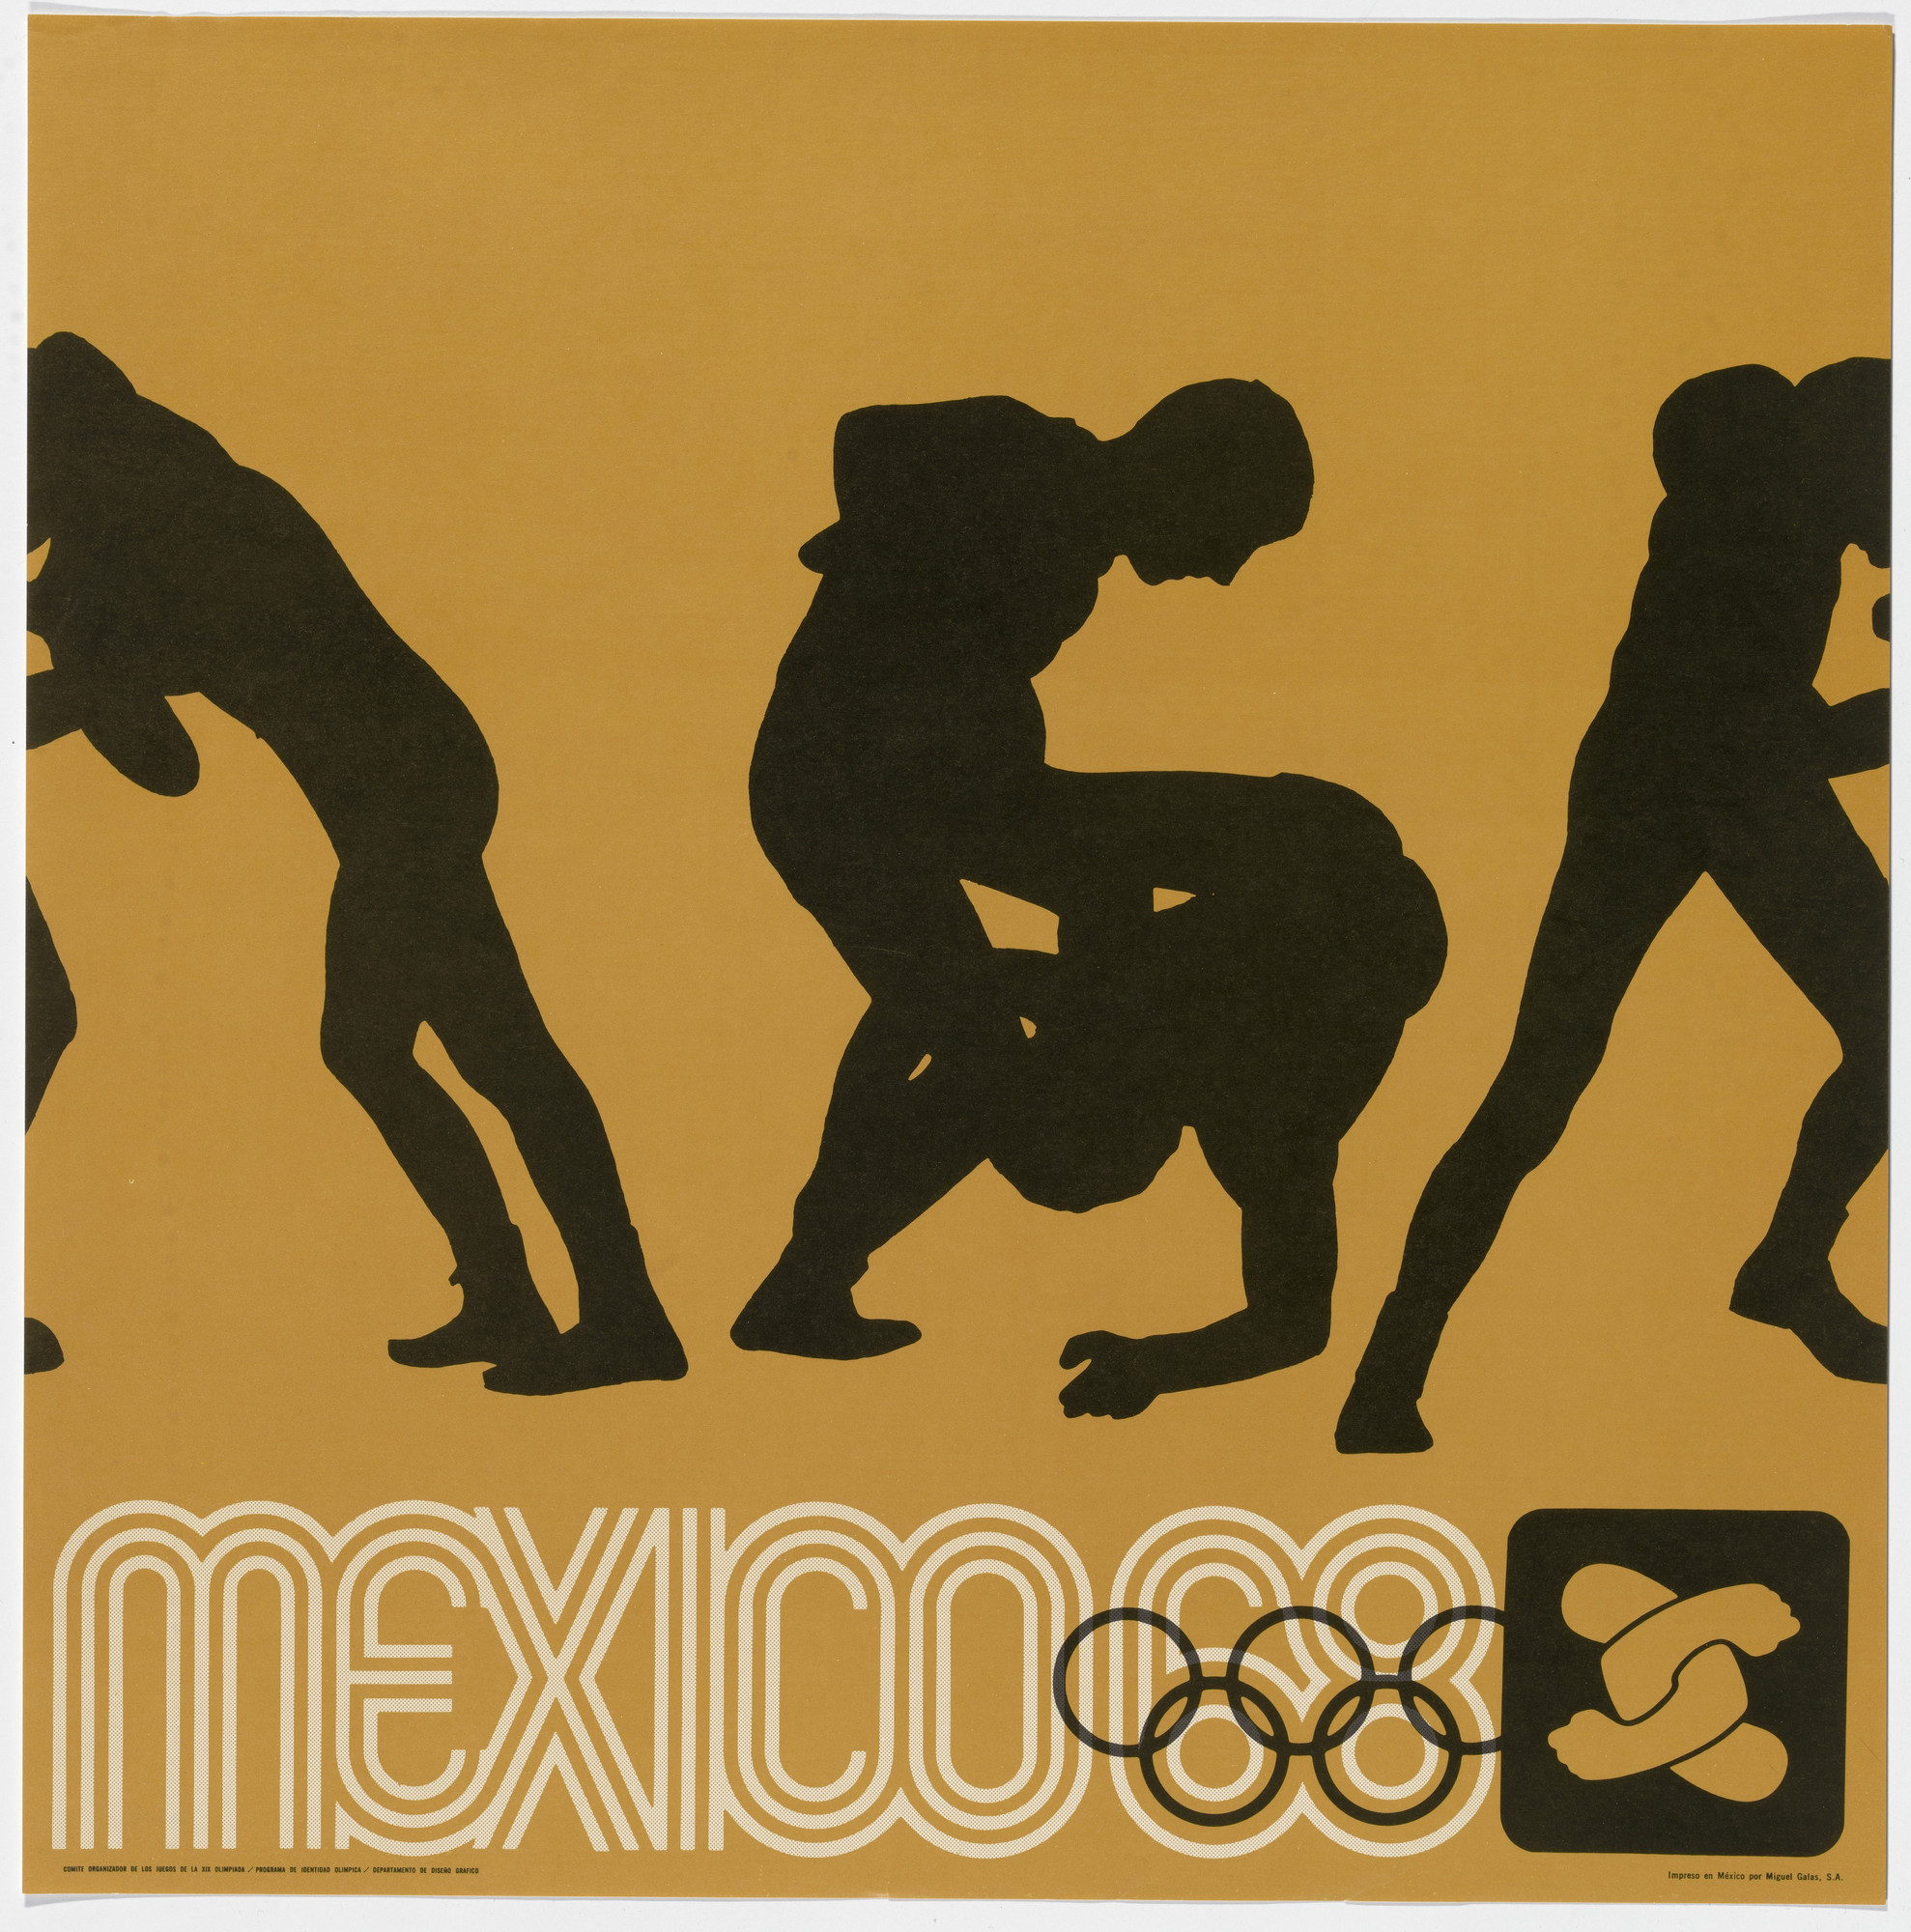 Lance Wyman, Department of Publications and Urban Design, Organizing Committee of the XIX Olympiad. Mexico City 1968 Olympics: Wrestling. c. 1968